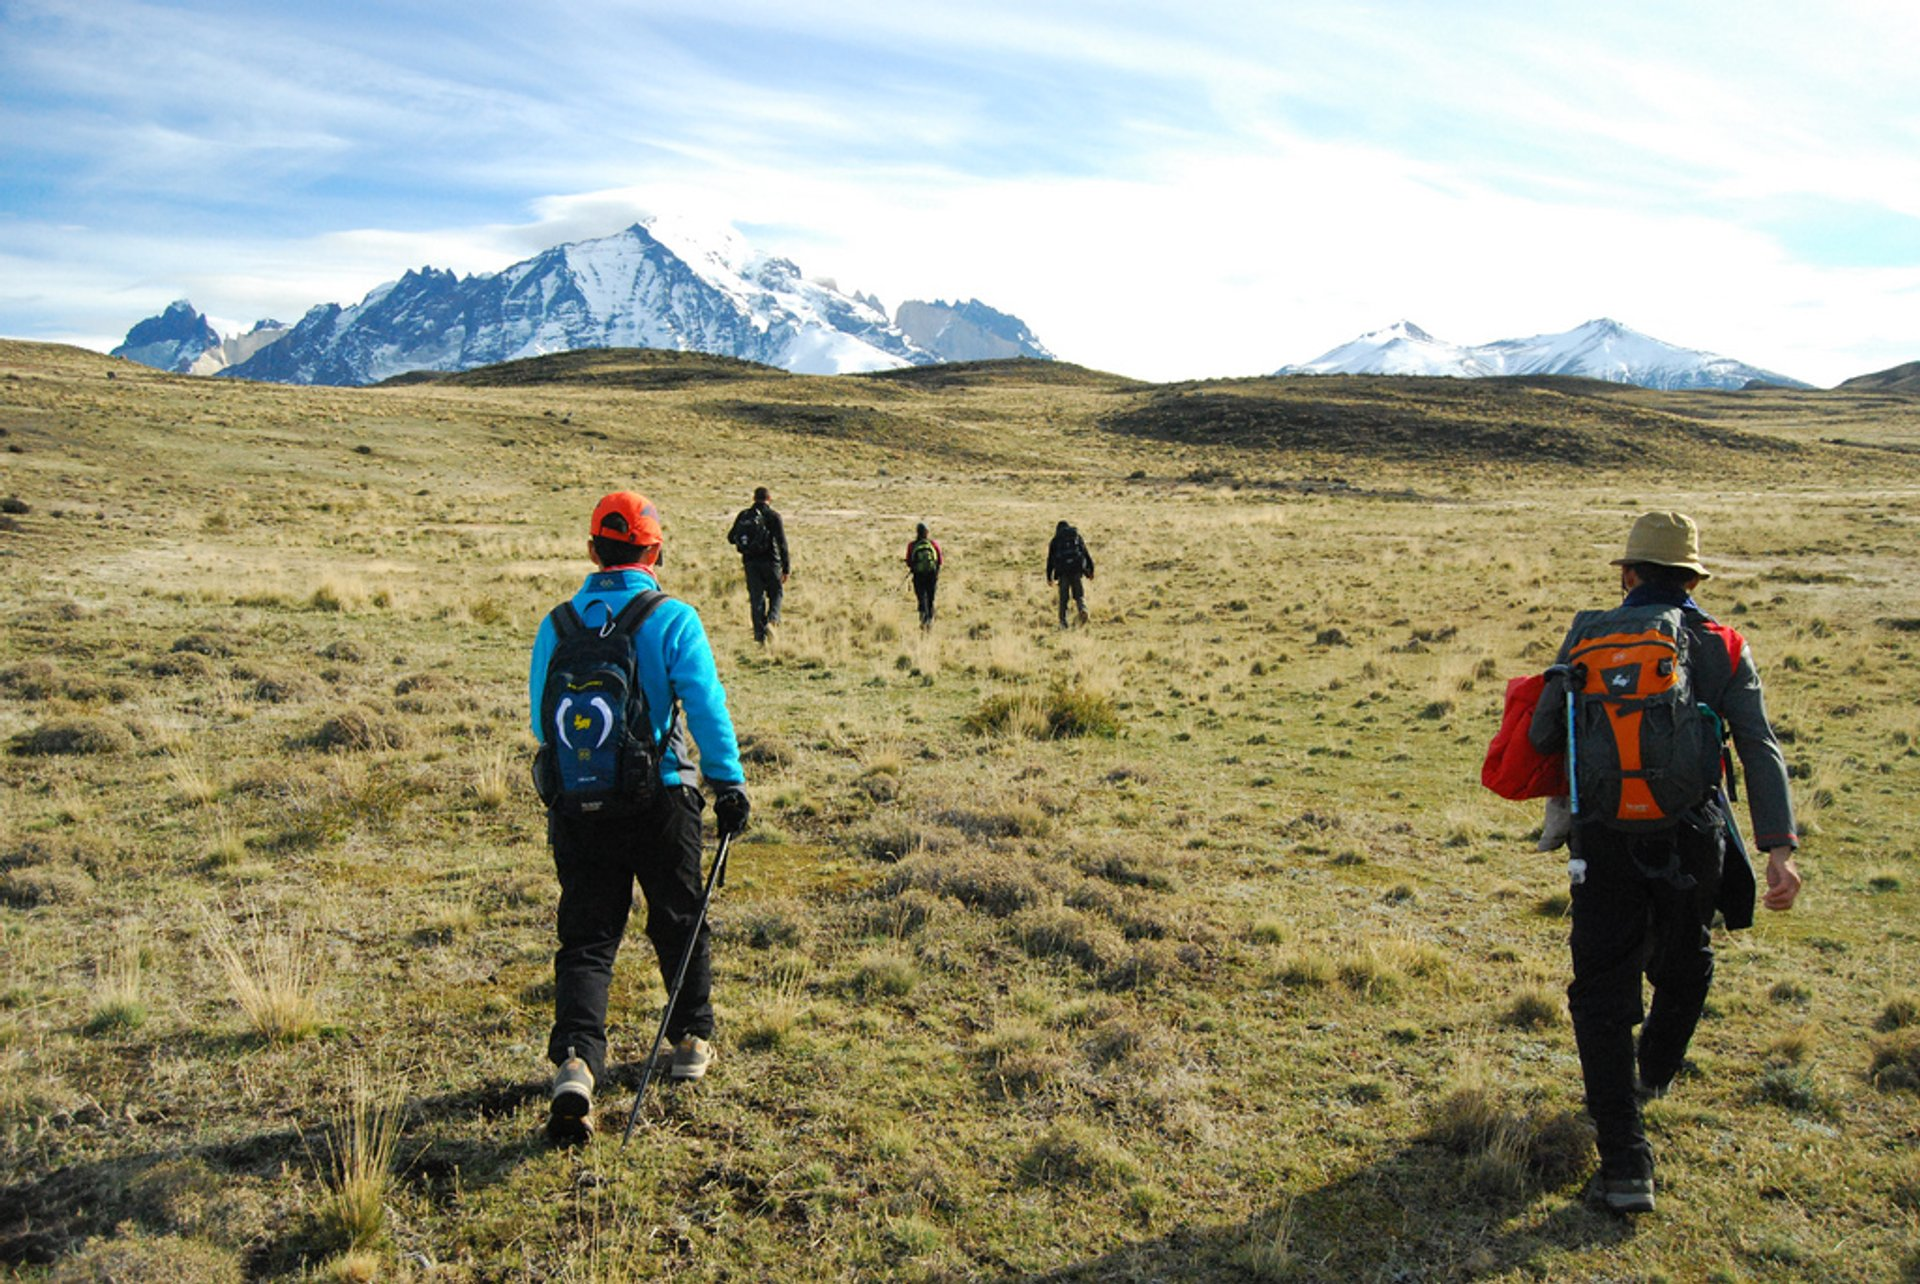 Hiking in Patagonia in Chile - Best Season 2019